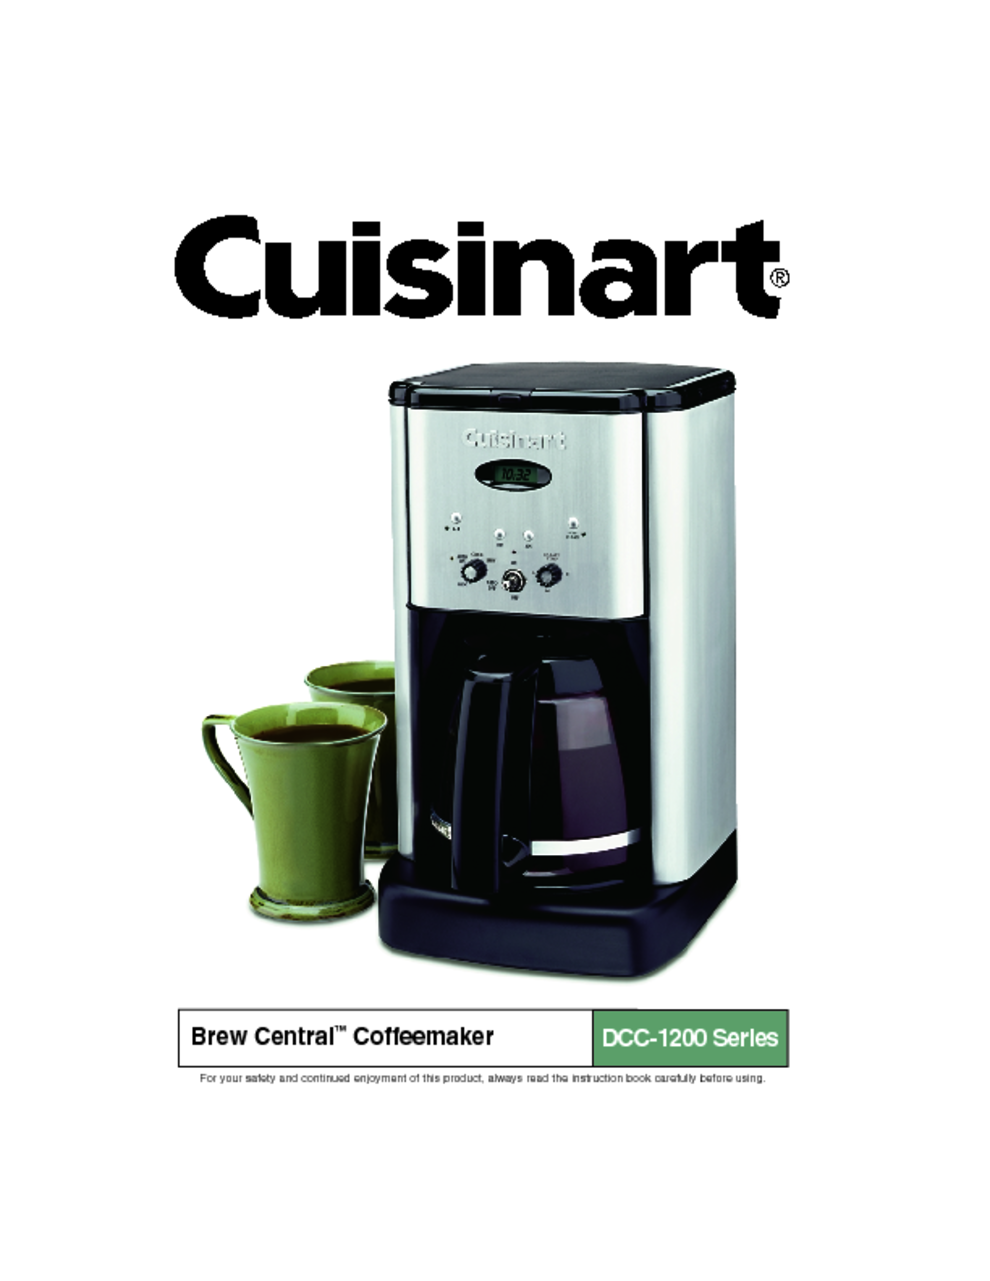 Self Cleaning Cuisinart Coffee Maker Instructions - irbrida